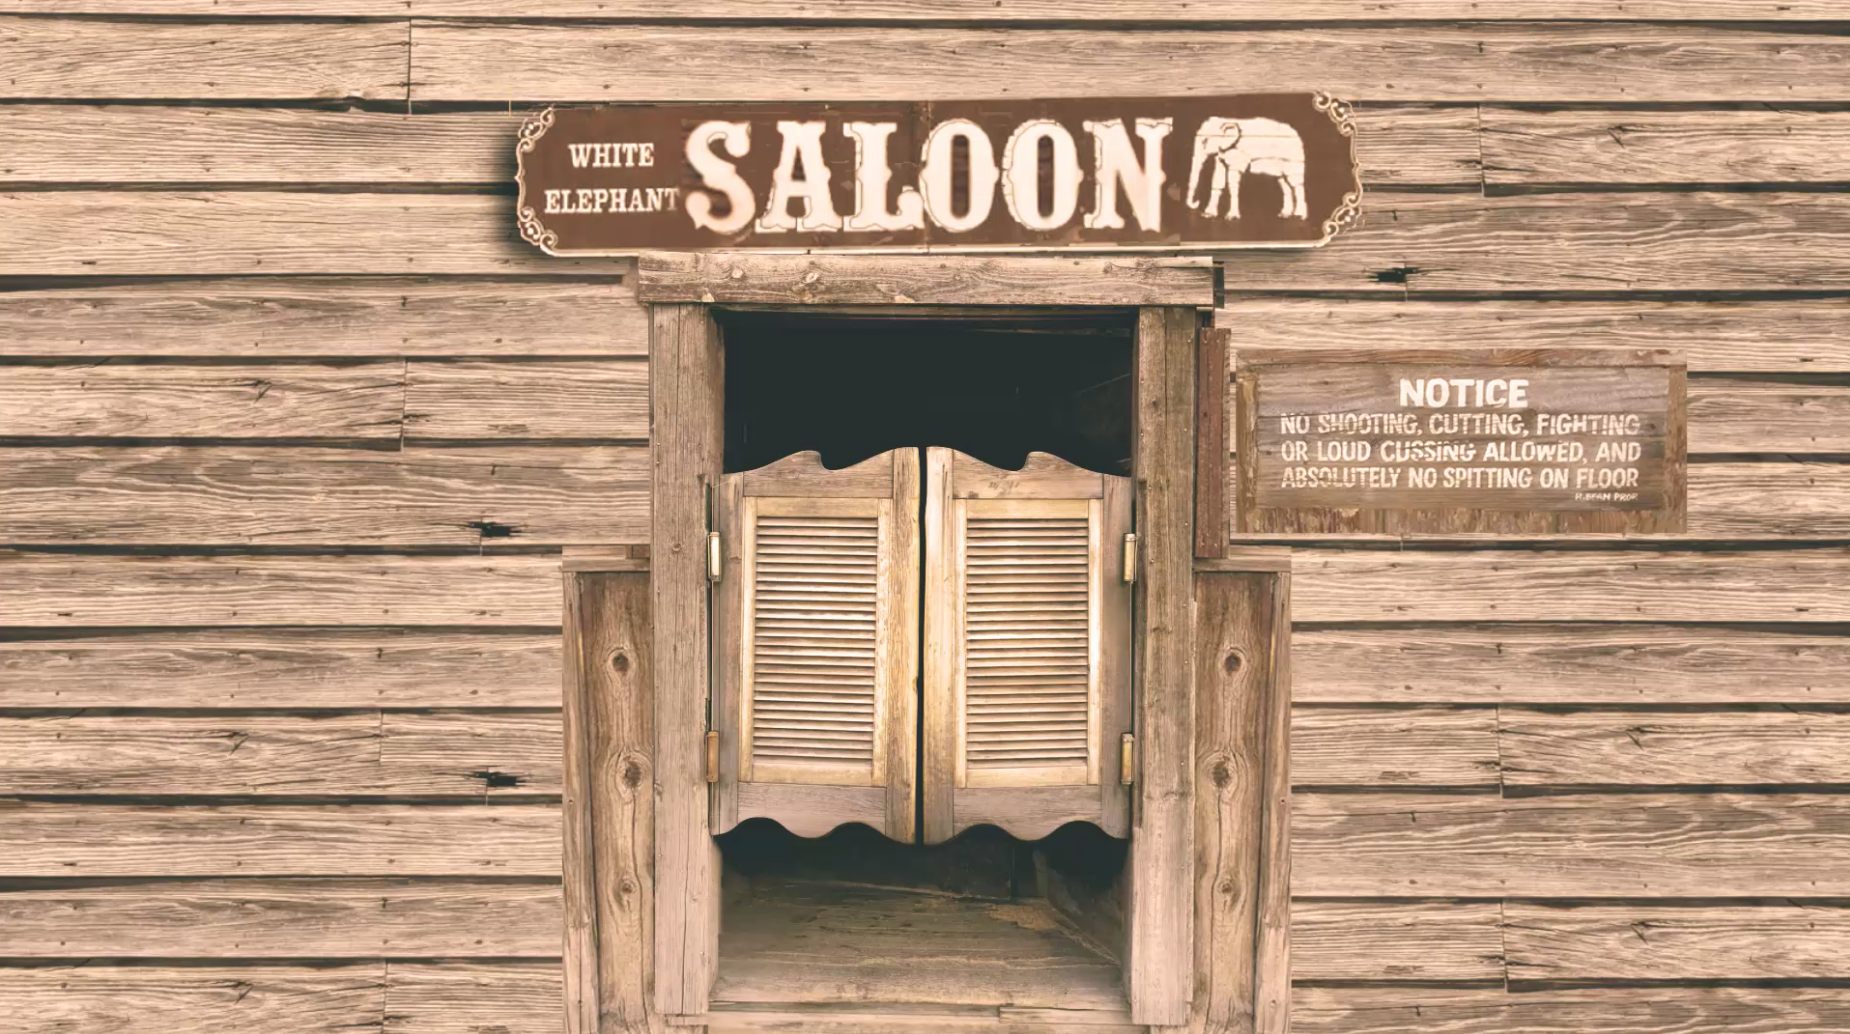 """The REAL Story Behind the """"White Elephant Saloon"""""""